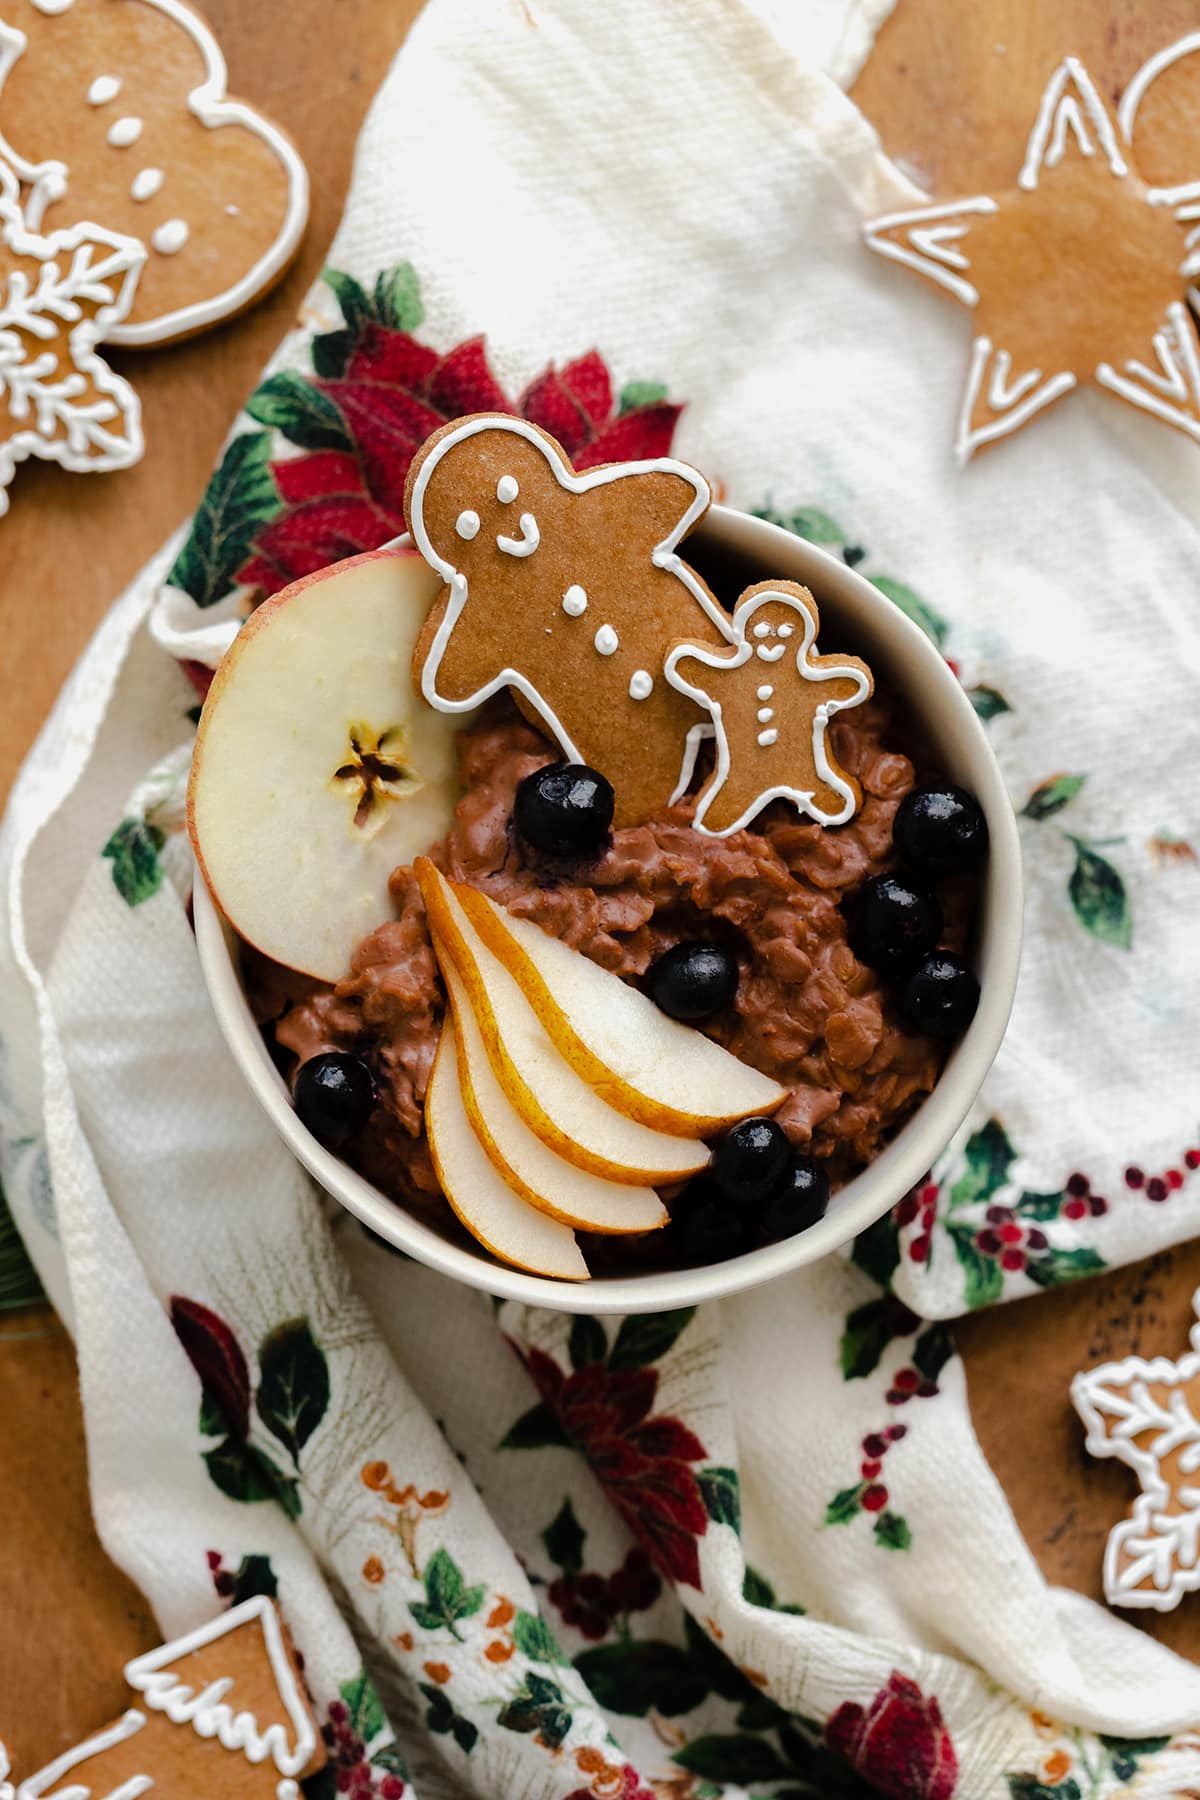 An overhead photo of Gingerbread oatmeal in a beige bowl garnished with sliced pear, a slice of apple, a few blueberries, and two gingrbread men. On light wooden background with a christmas tea towel under the bowl and gingerbread cookies around it.